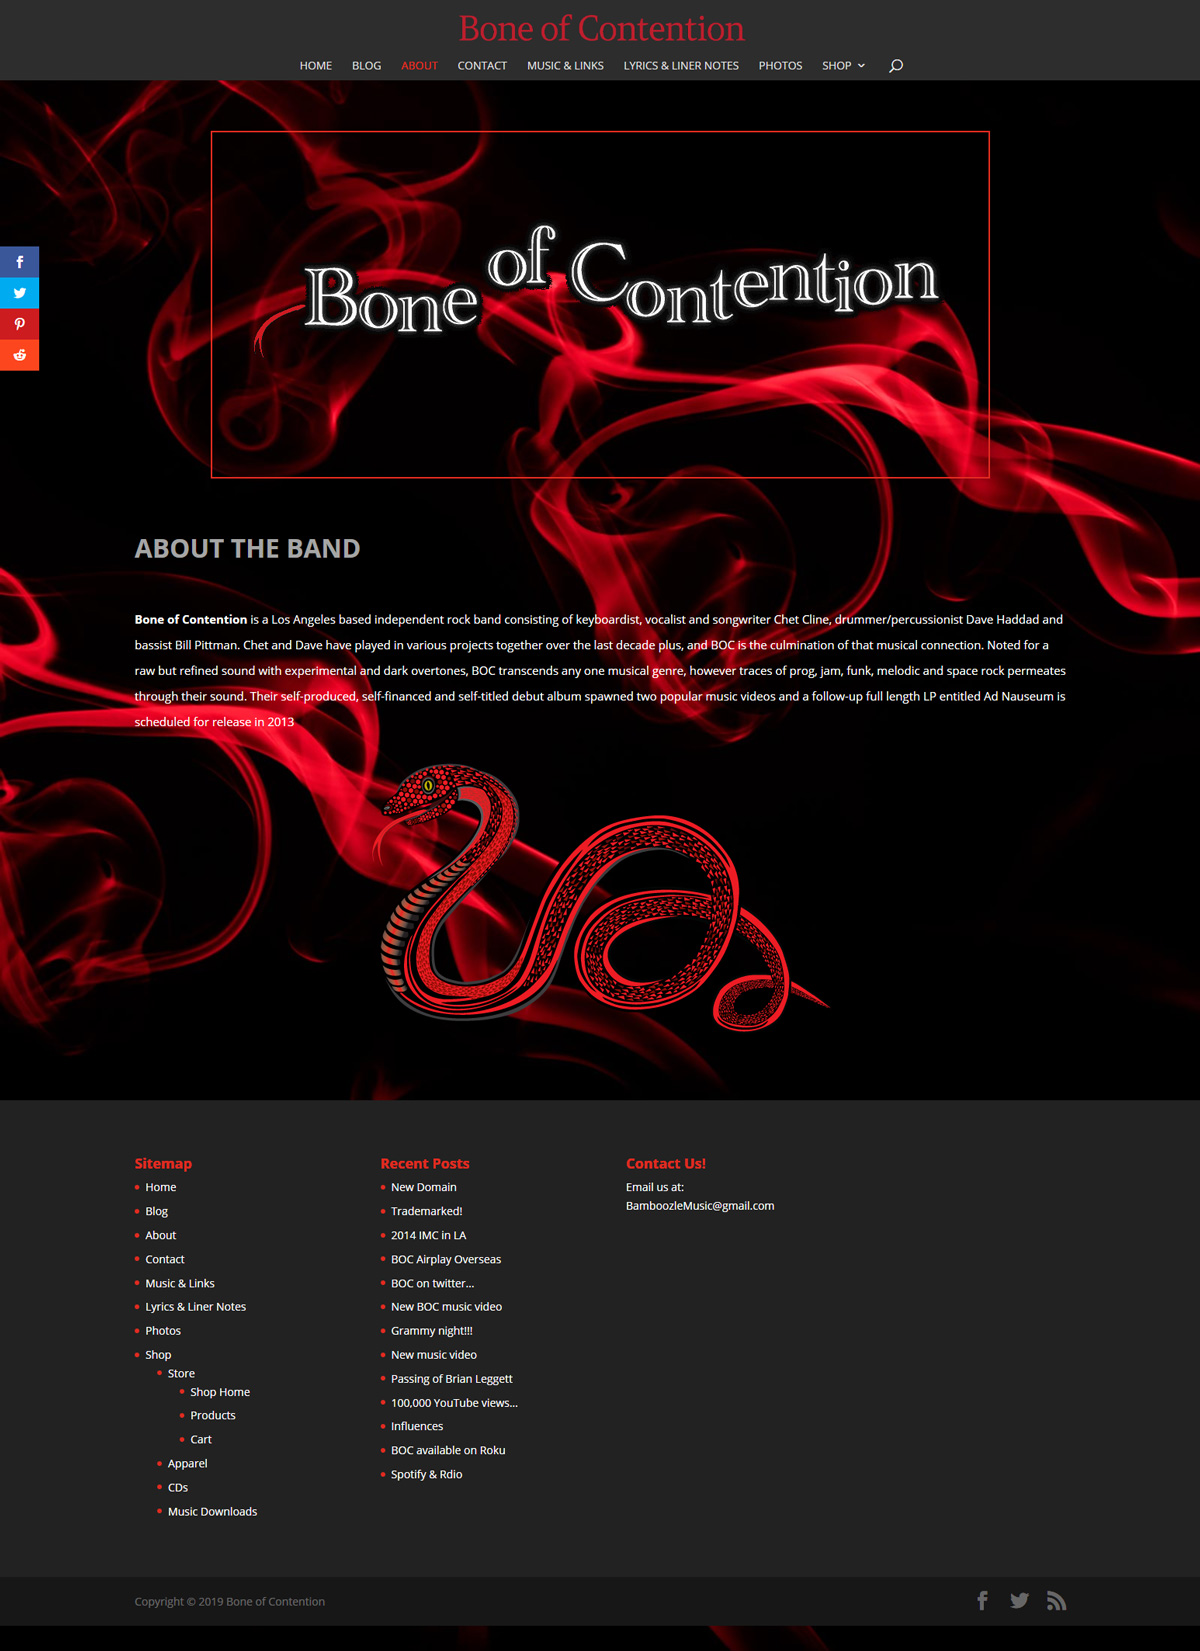 boneofcontention.rocks